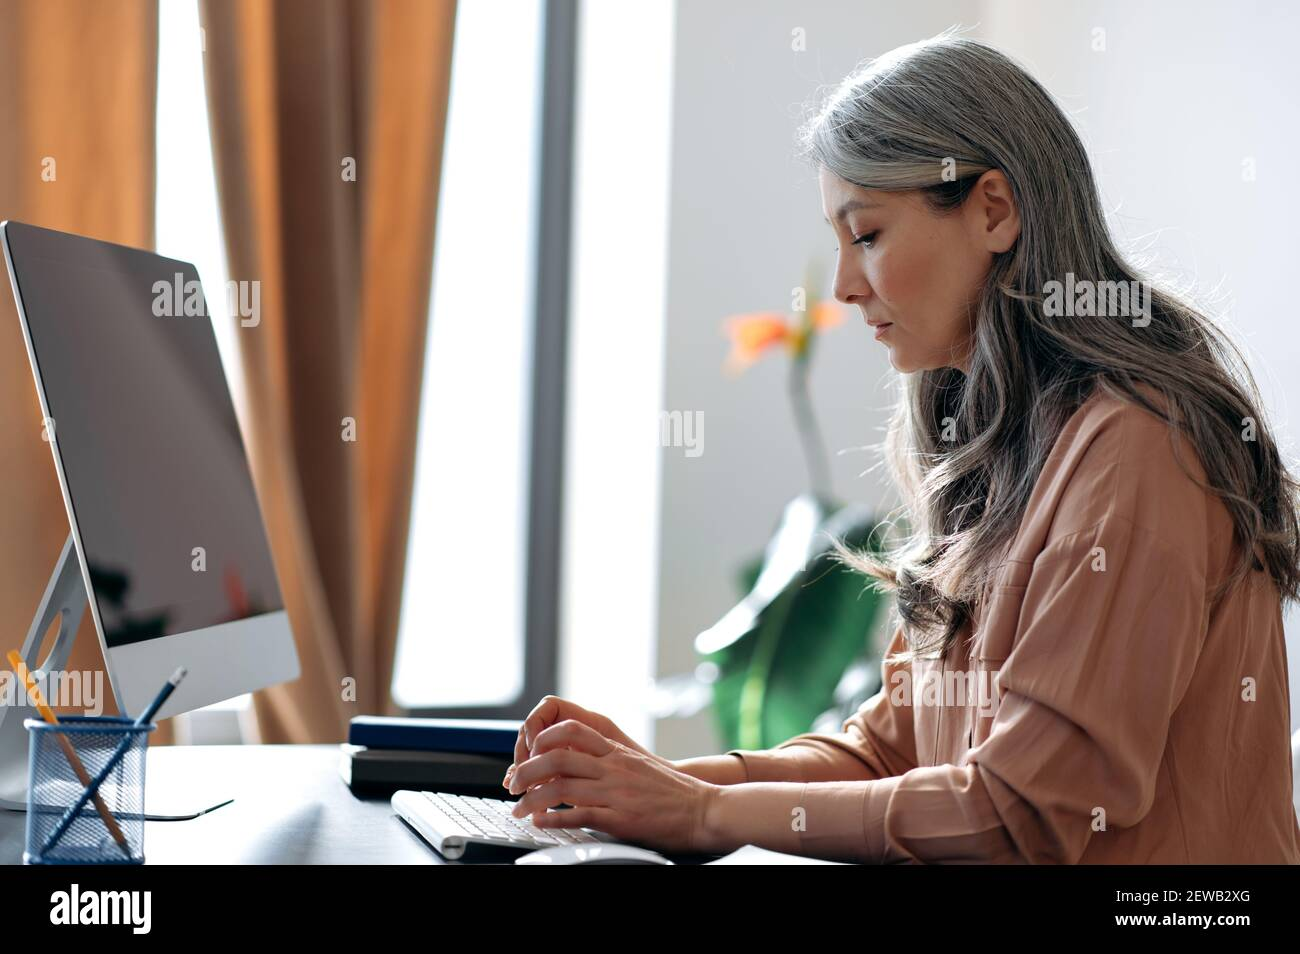 Focused gray-haired mature asian female employee, manager, ceo, working on computer, browsing internet, searching ideas, answers email, sitting at the work desk Stock Photo